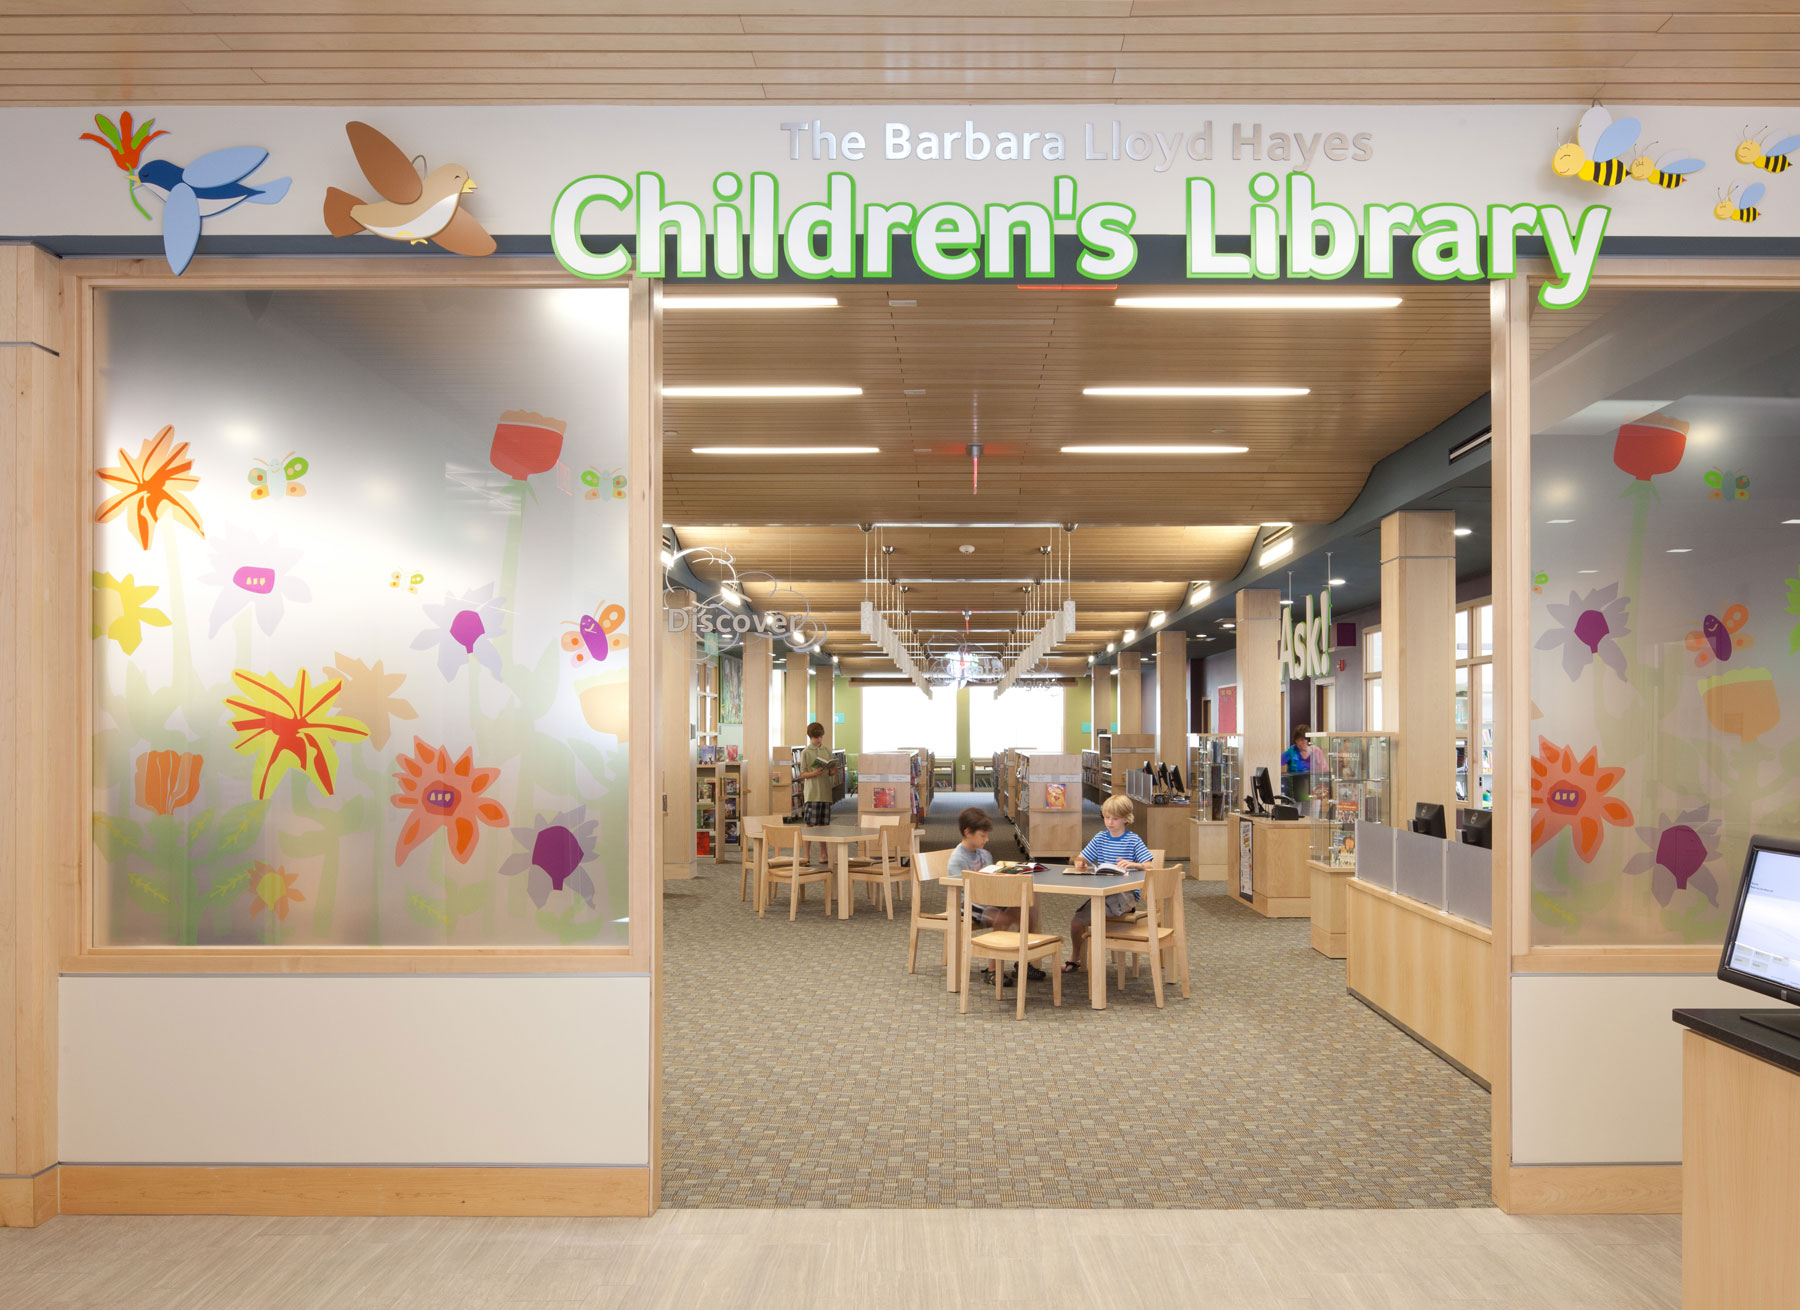 The children's library, two glass paint splattered doors frame the entrance. Inside, a grey carpet is topped with small children's tables and wood finishes.